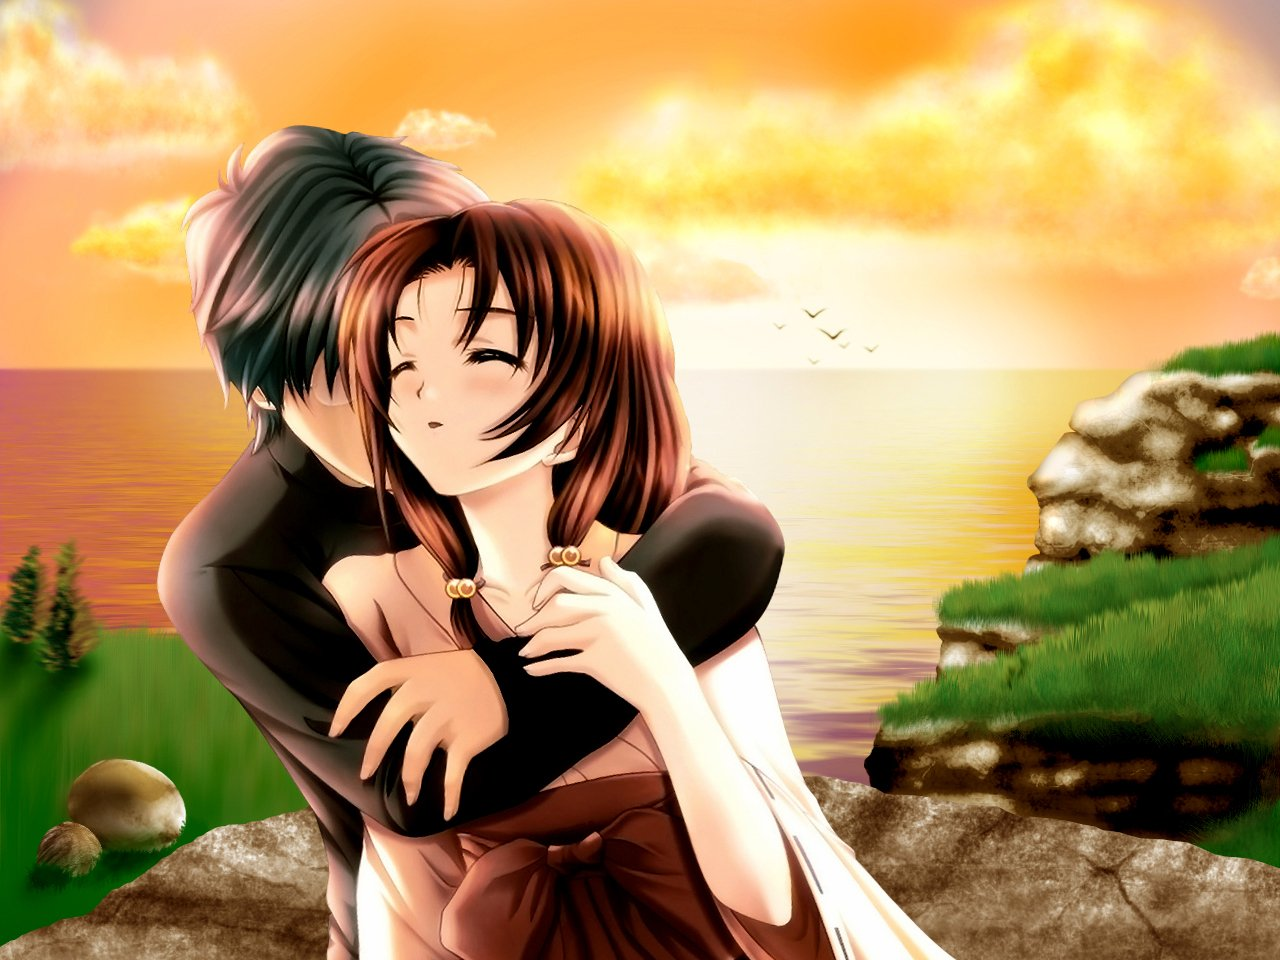 Pictures Cute Couple In Hd: Anime Couple HD Wallpaper